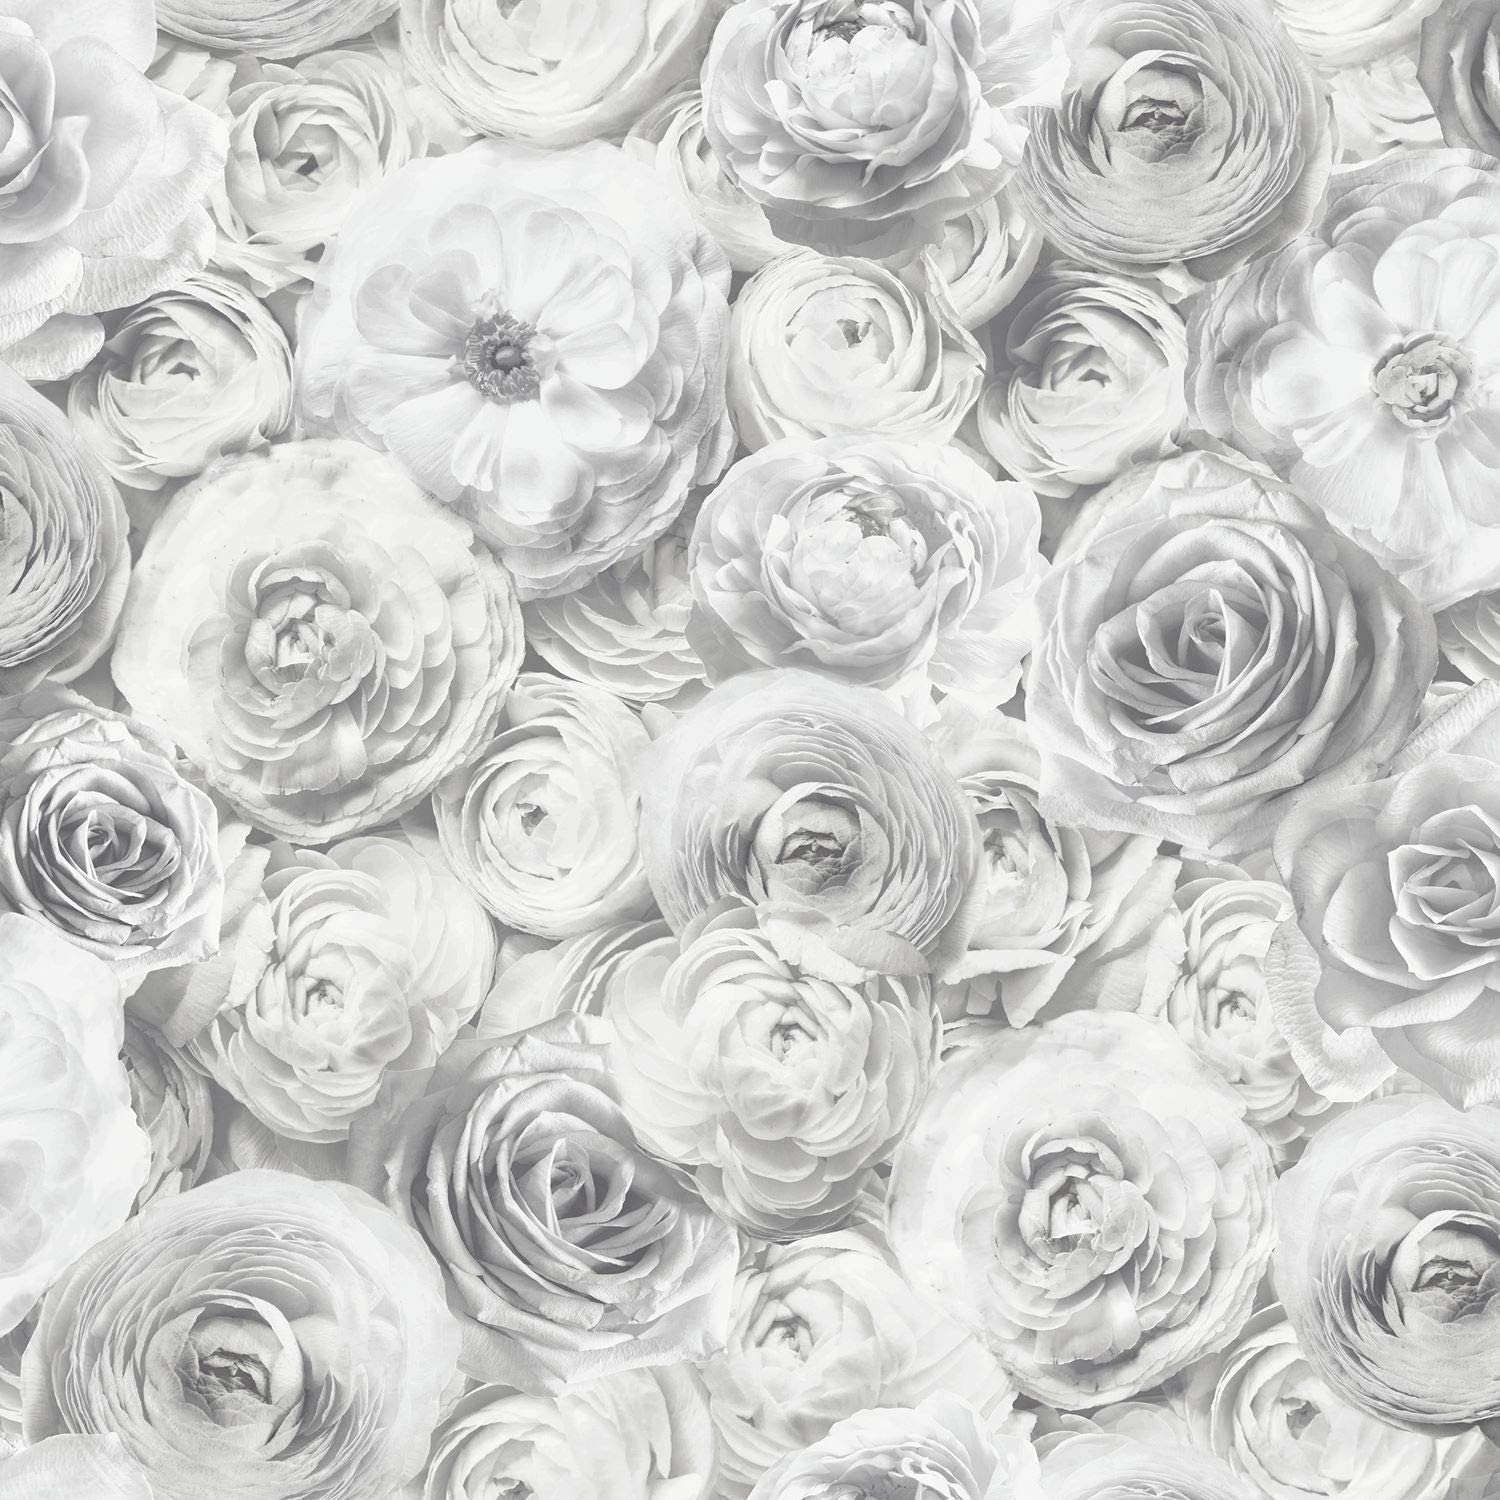 Arthouse Wild Rose Floral Wallpaper Silver Grey Petals Flowers 3d